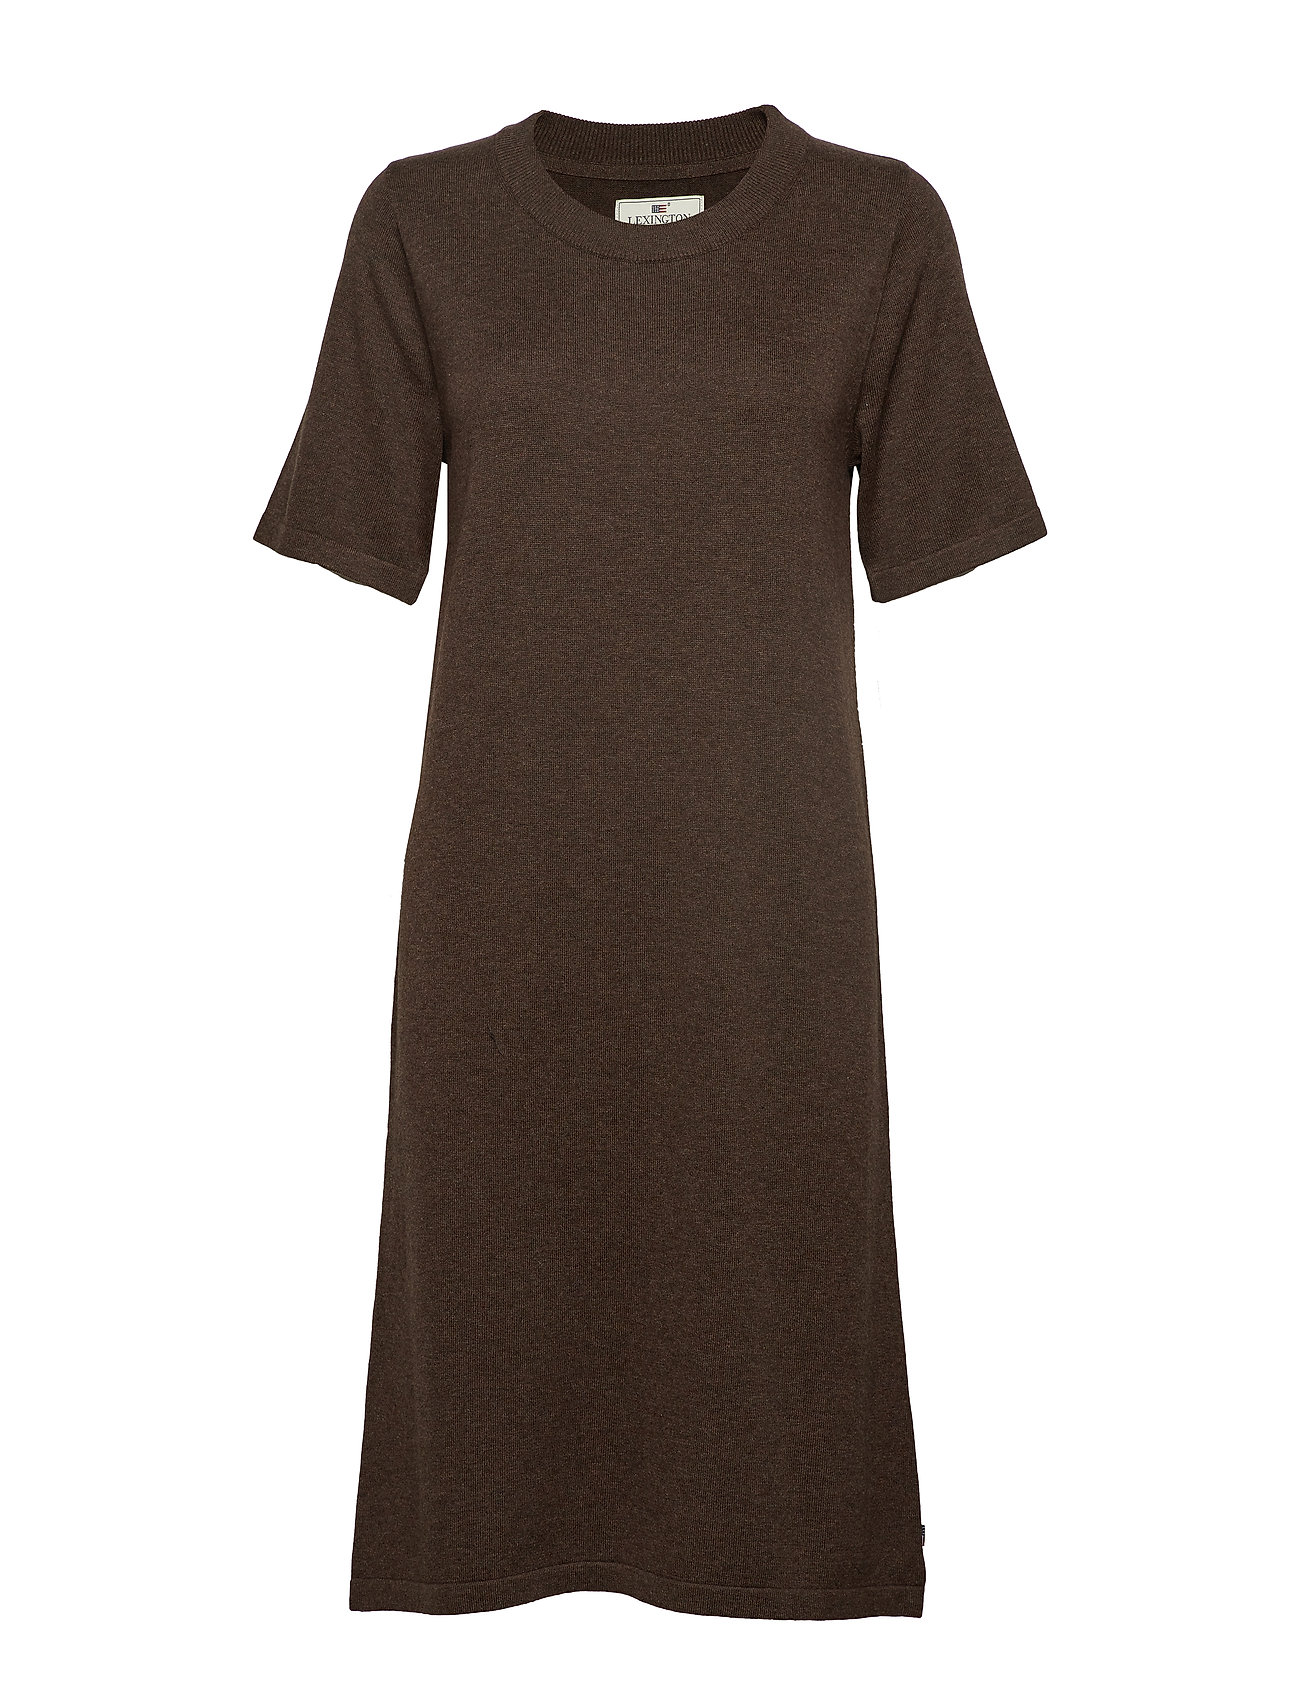 Lexington Clothing Amy Knitted Dress - BROWN MELANGE